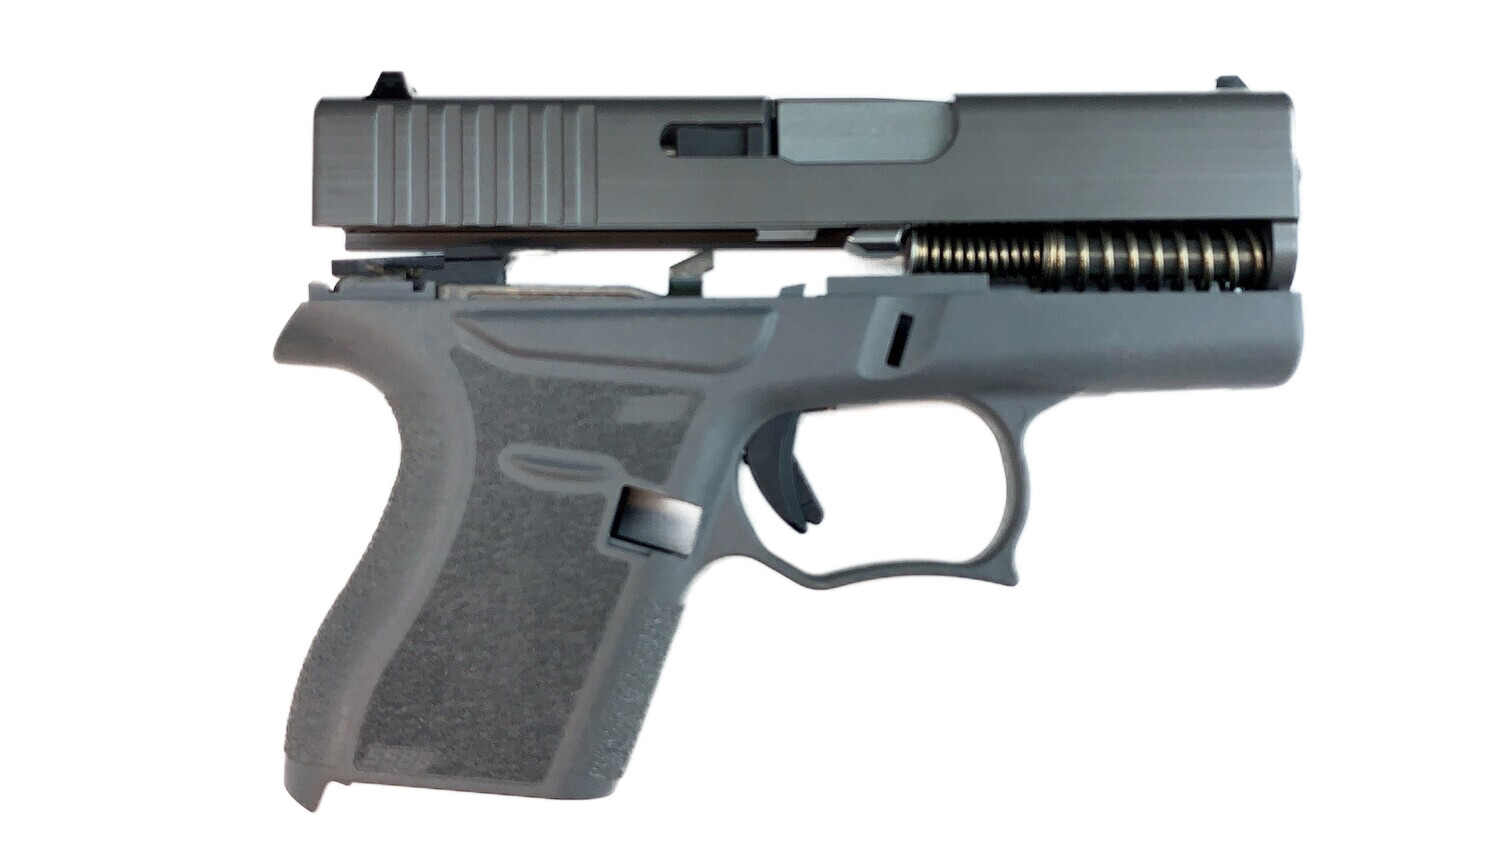 80% Glock 43 Subcompact Full Pistol Build Kit Grey / Grey - FRAME NOT INCLUDED